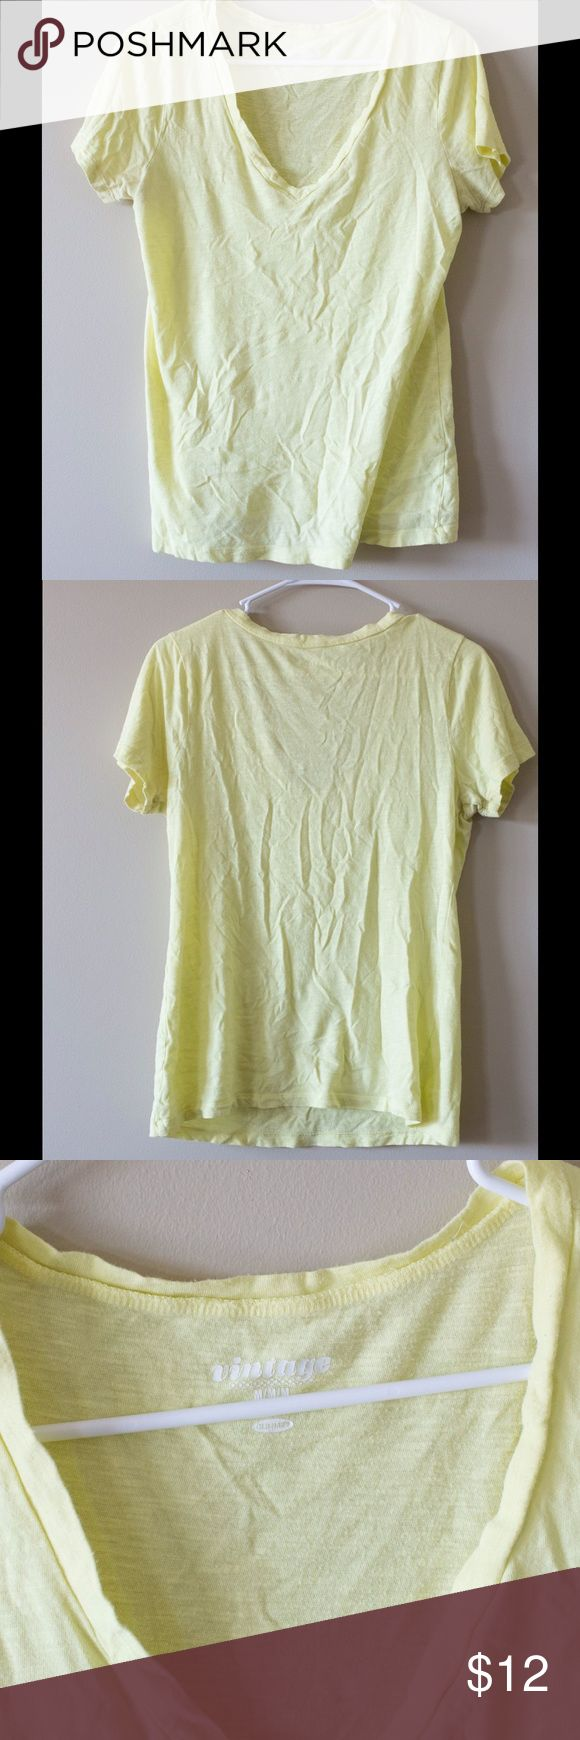 Old Navy tee Yellow old navy tee shirt, pairs great with a cami and jeans! No damage but some wrinkles Old Navy Tops Tees - Short Sleeve